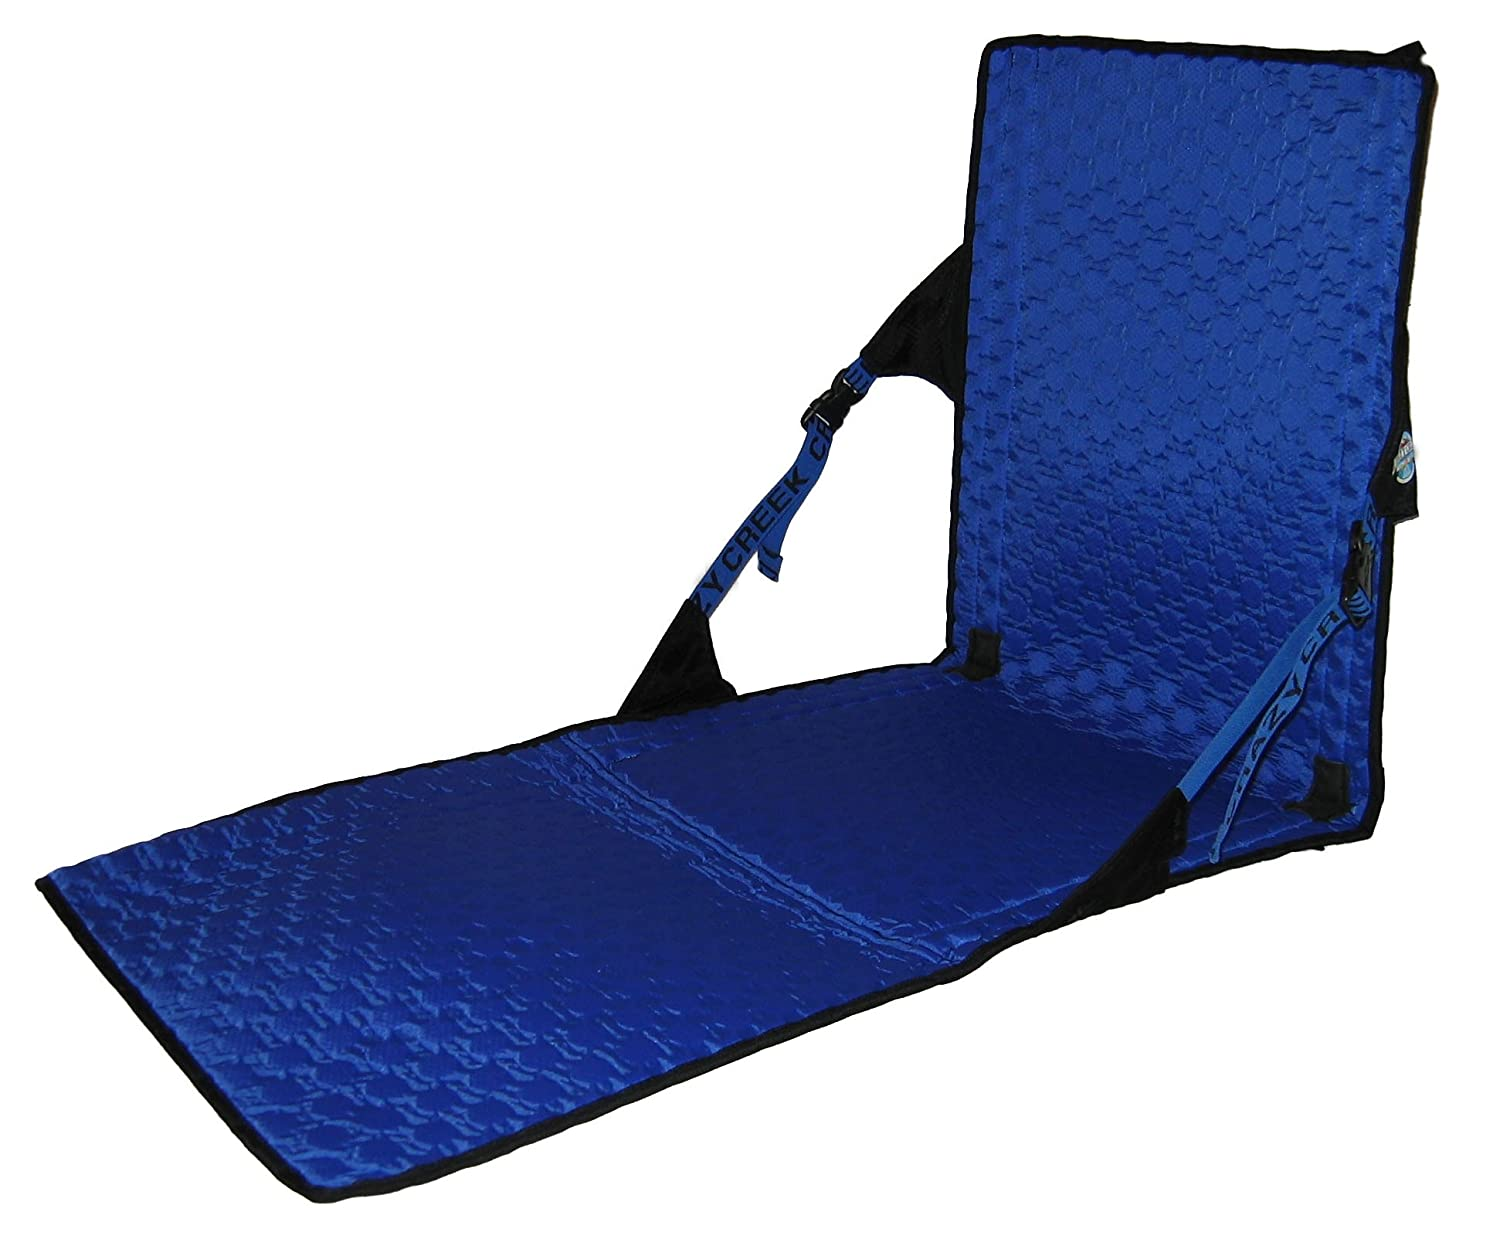 Crazy Creek HEX 2.0 PowerLounger, Black/Royal  Best Backpacking Chairs